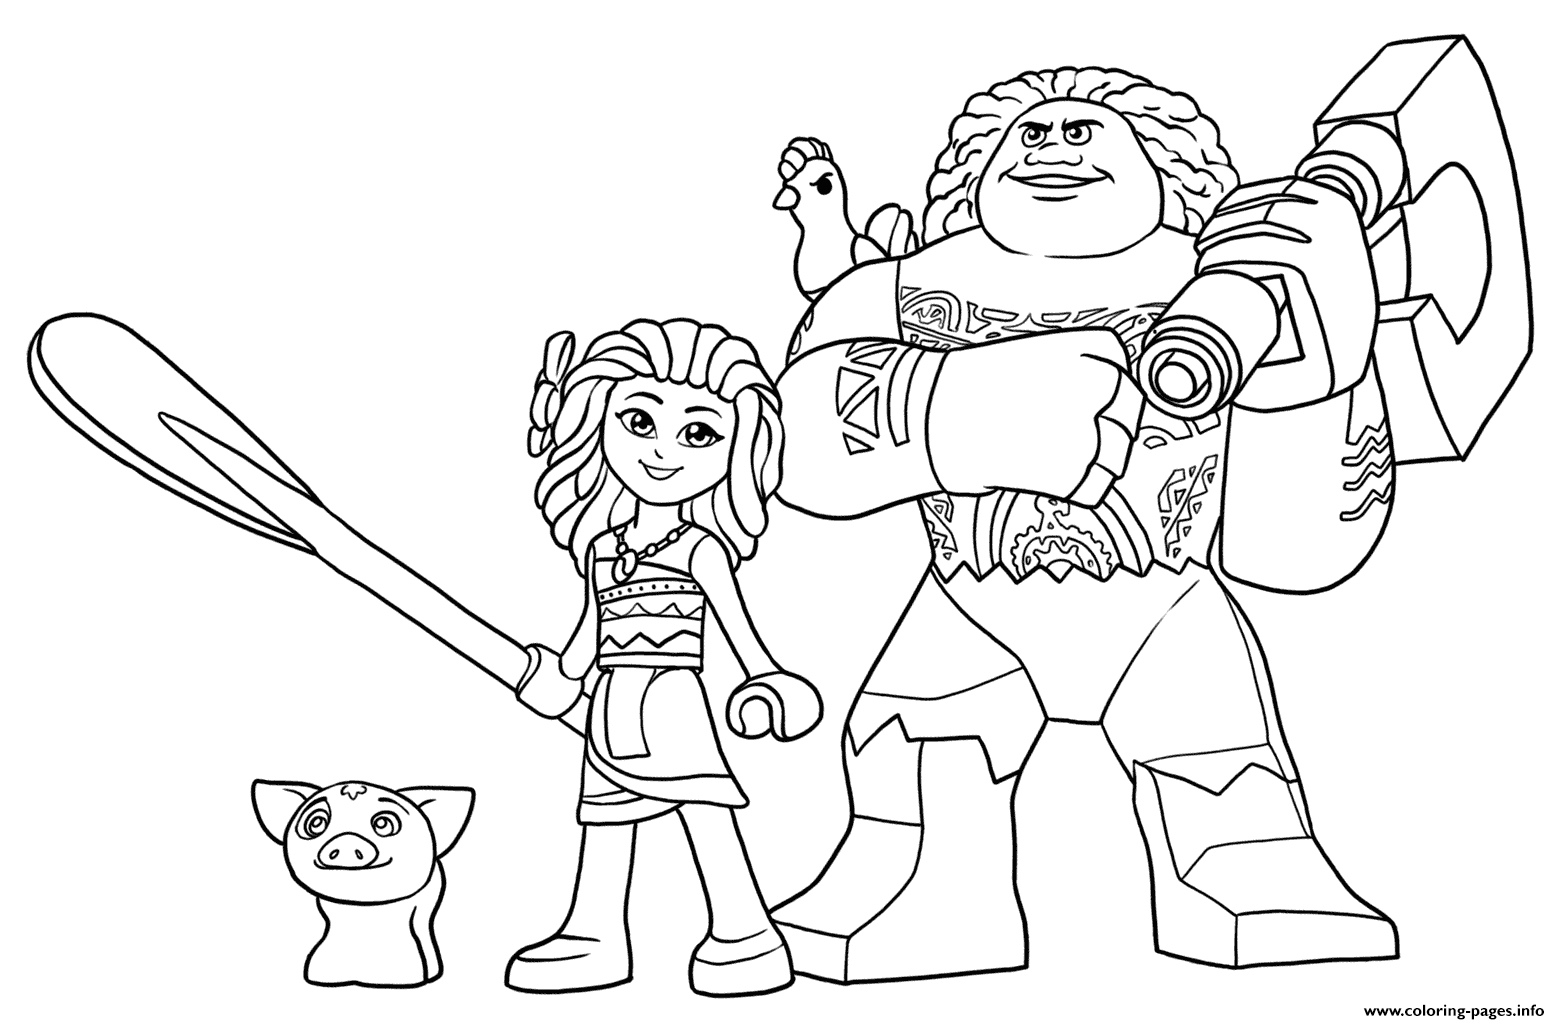 Coloring pages ideas : Awesomeloring Pages Moana Image Ideas Lego ...